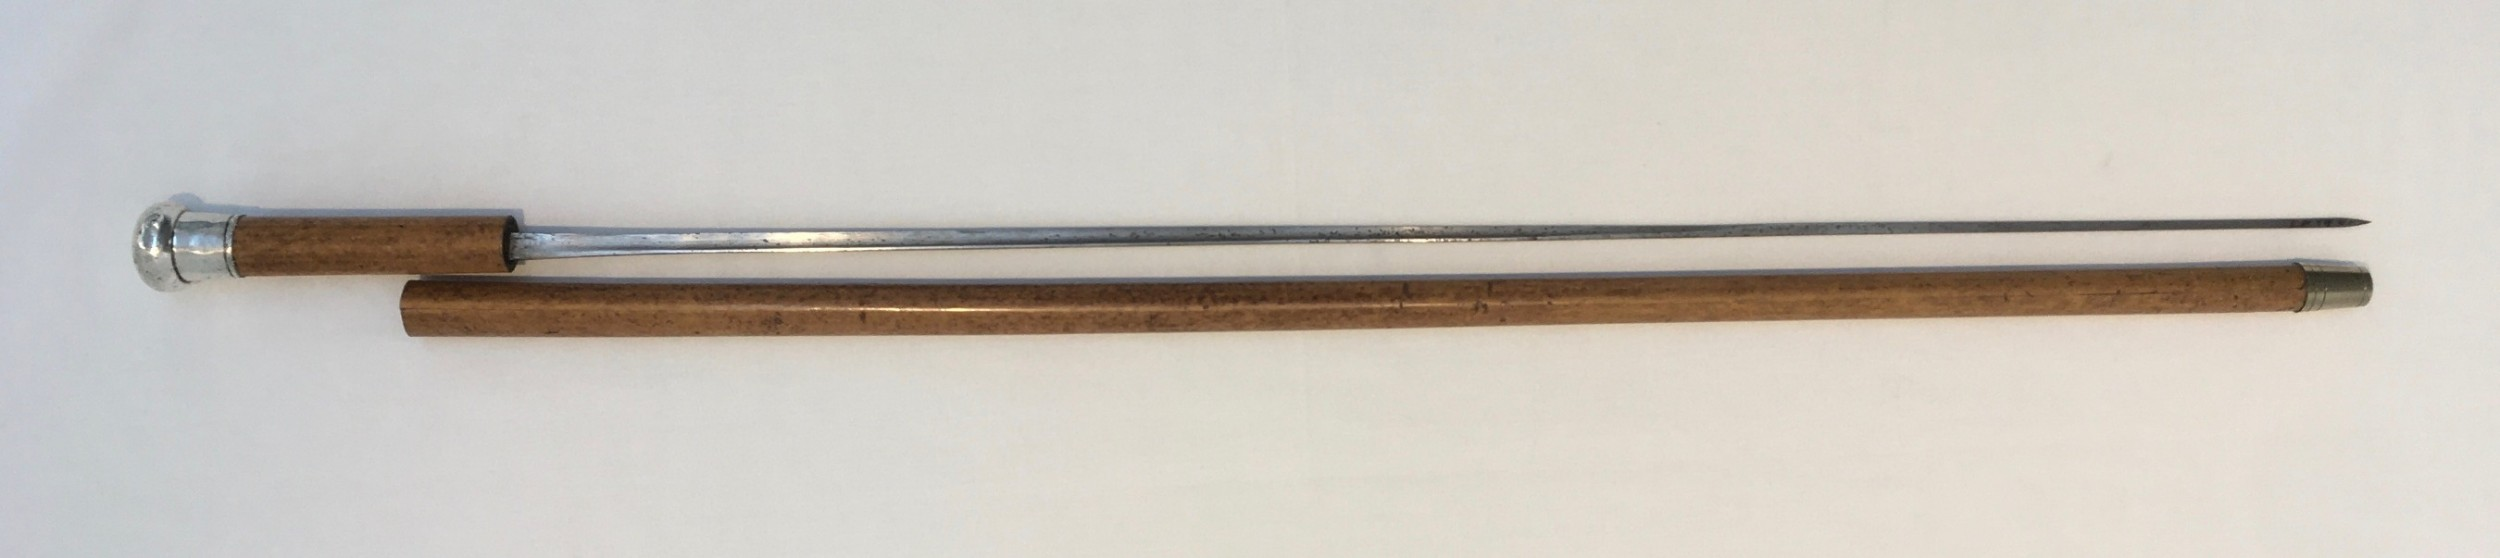 silver handled malacca sword stick london 1886